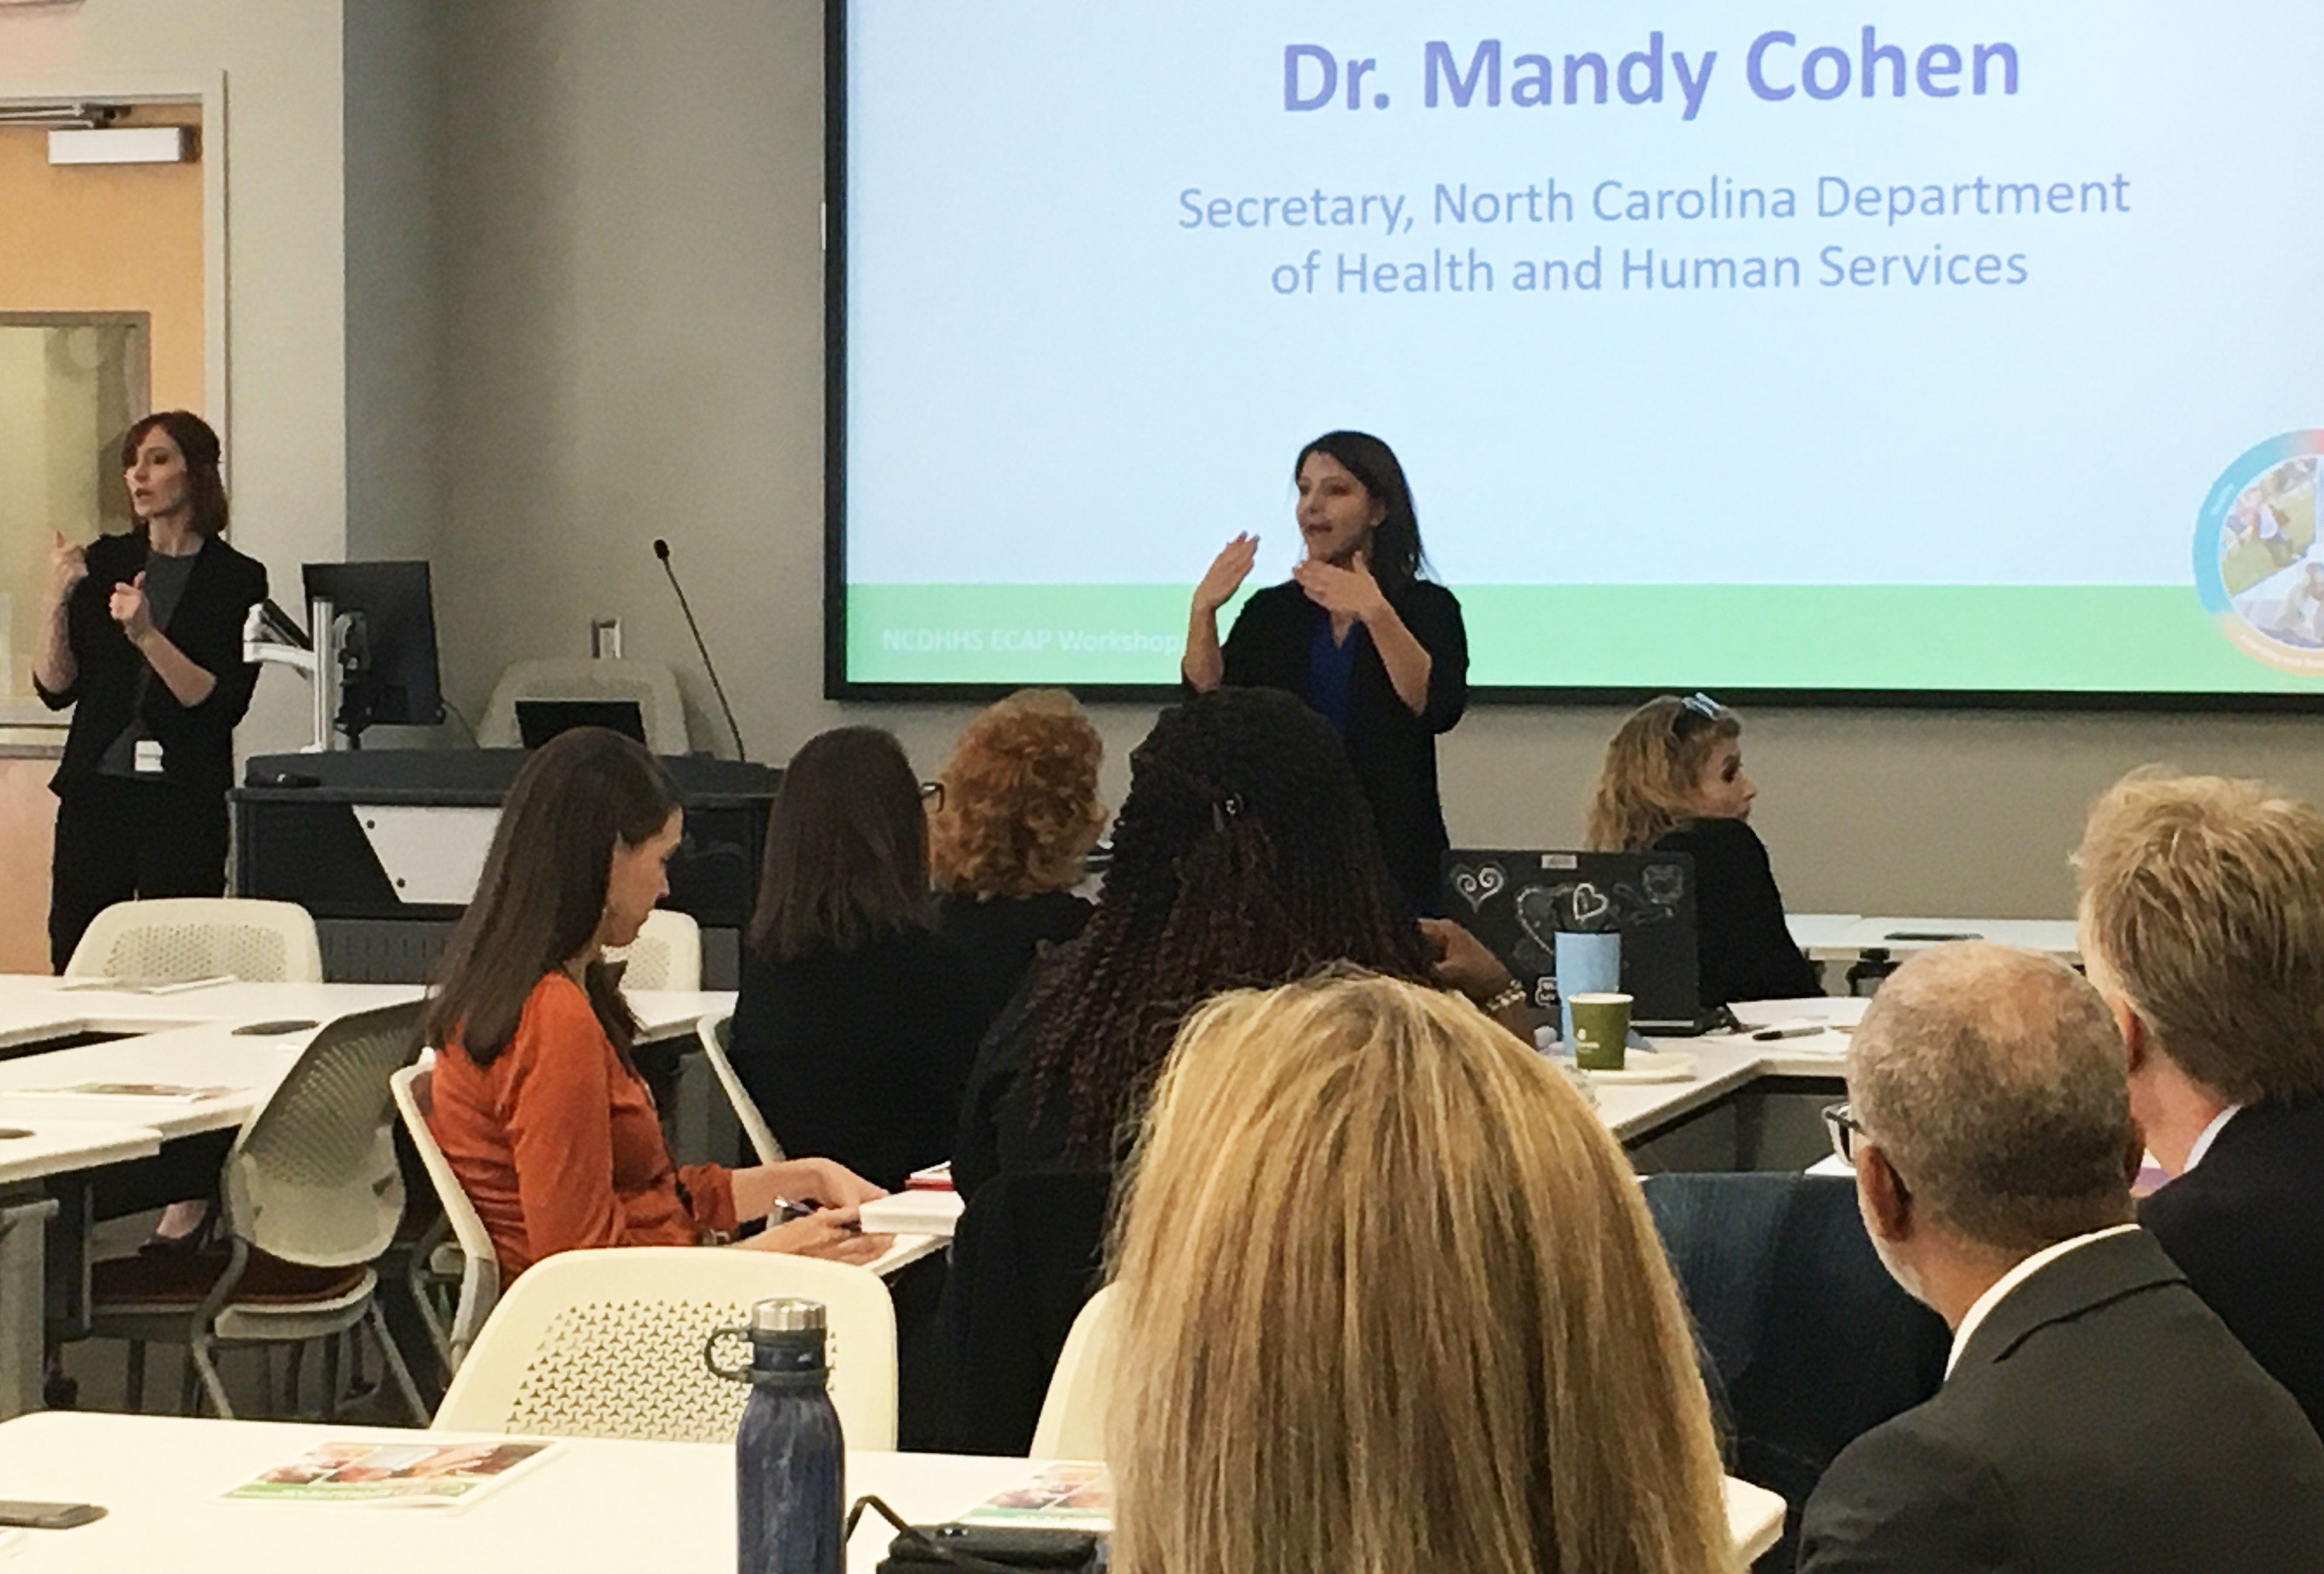 DHHS Secretary Mandy Cohen welcomed attendees from across the Department's divisions